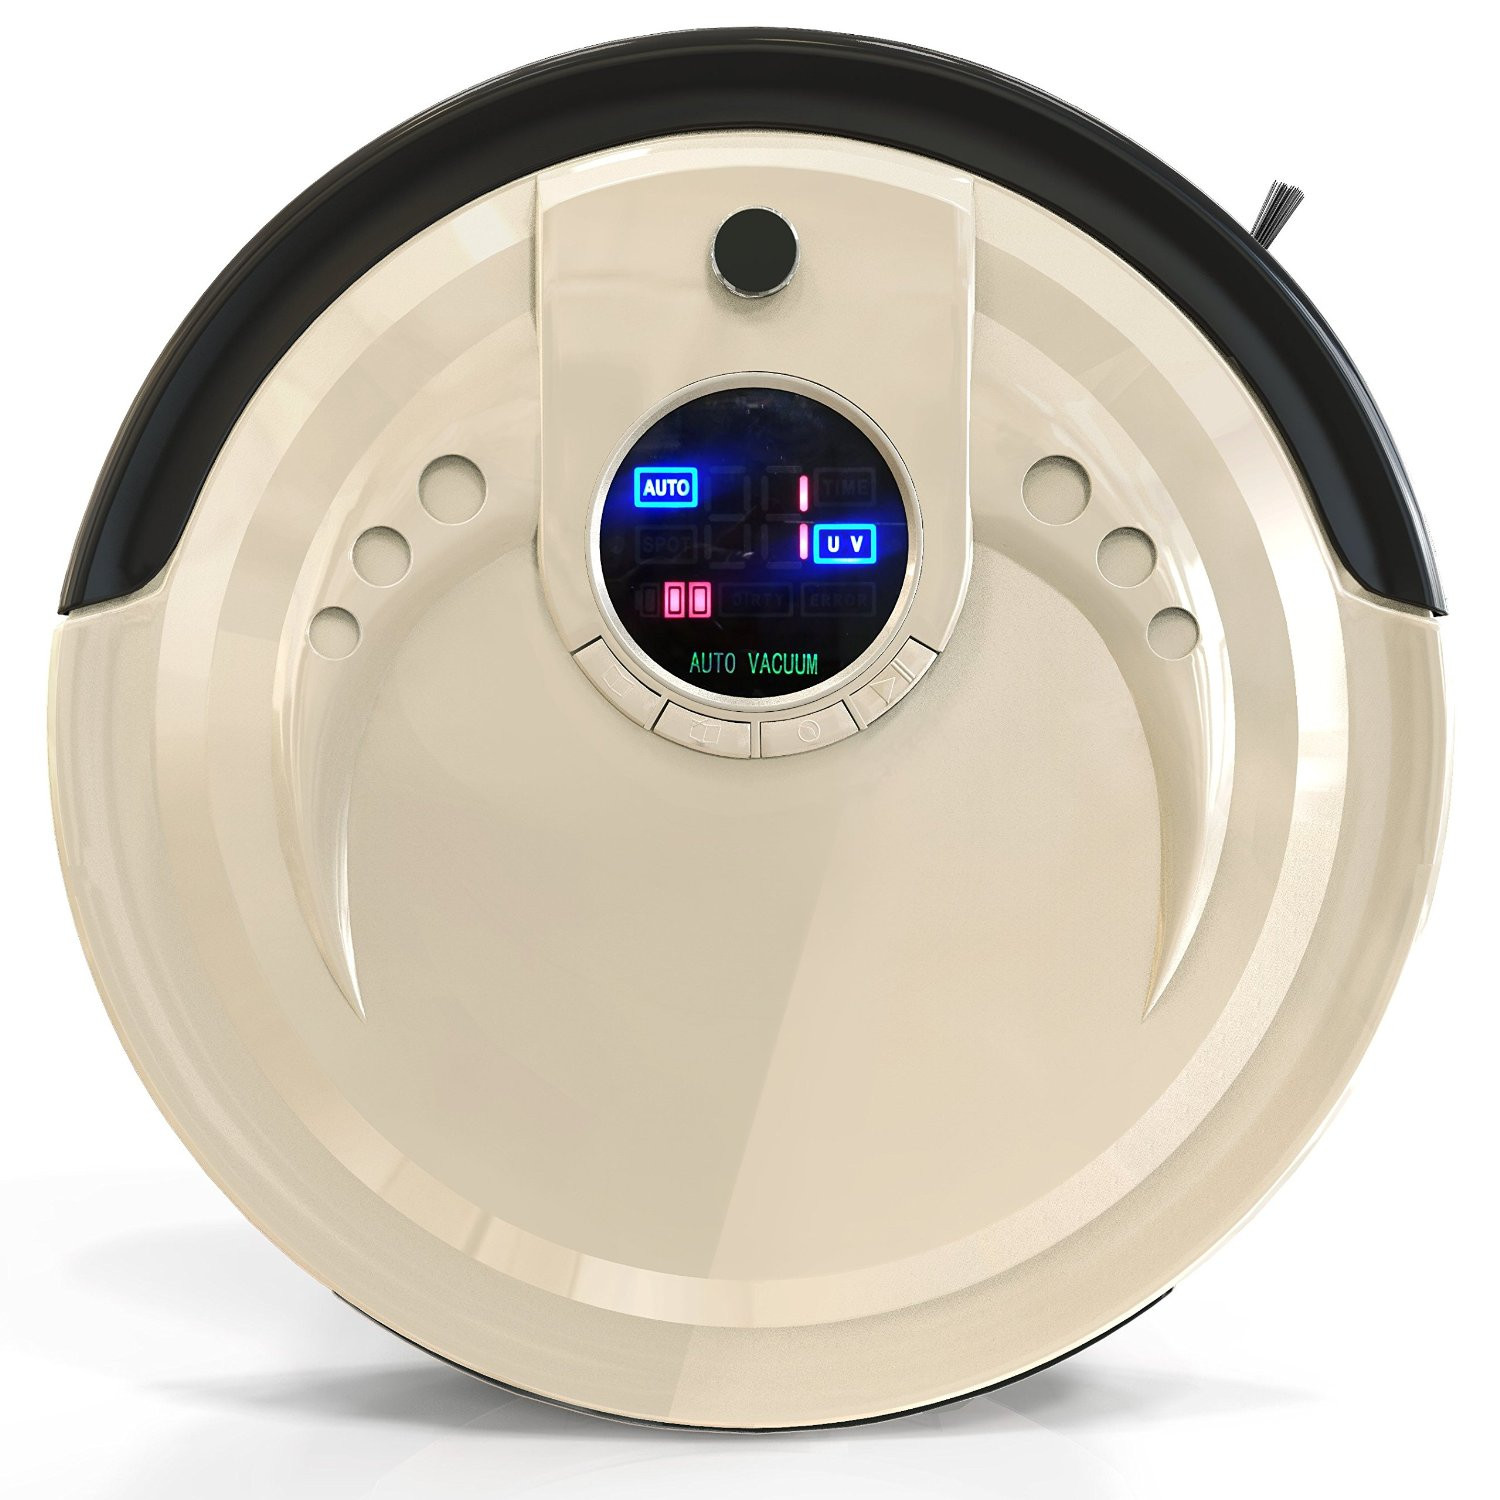 Hardwood Floor Mop Robot Of top 10 Best Robotic Vacuums 2019 Cleaning Mopping Robot Reviews for Bobsweep Standard Robotic Vacuum Cleaner and Mop Best Robotic Vacuums